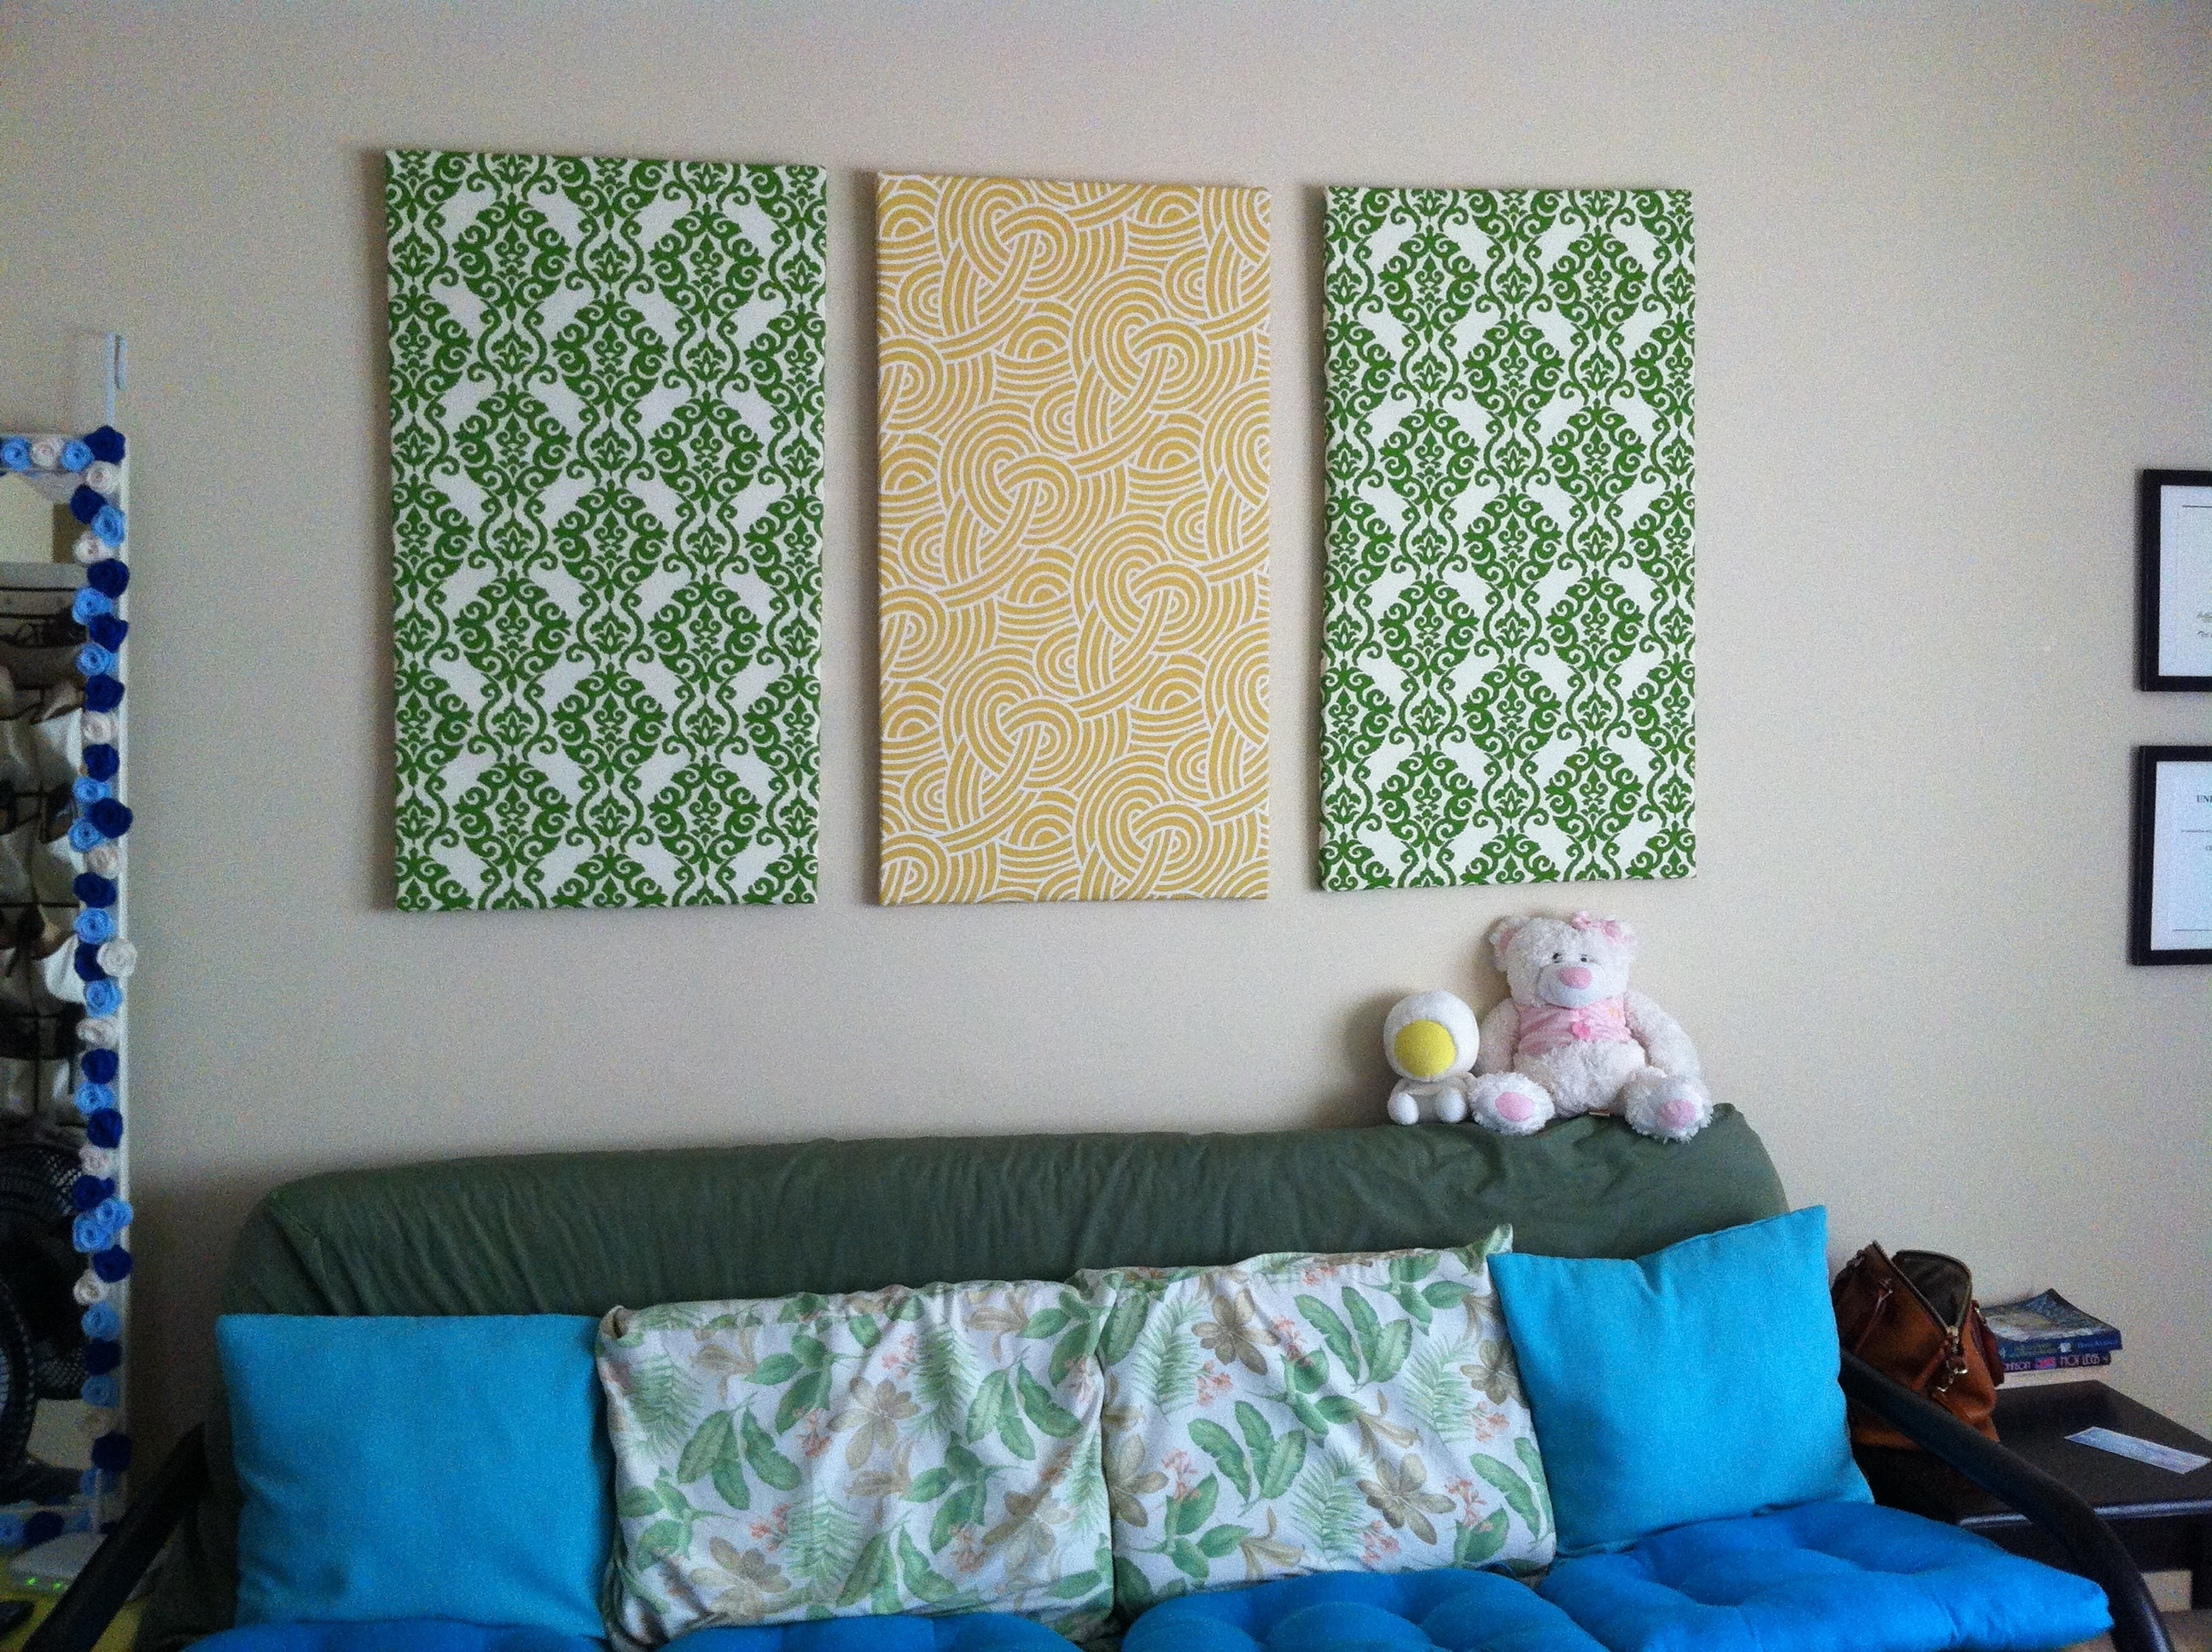 Art: Diy Fabric Wall Art Pertaining To Most Current Diy Fabric Covered Wall Art (View 2 of 15)